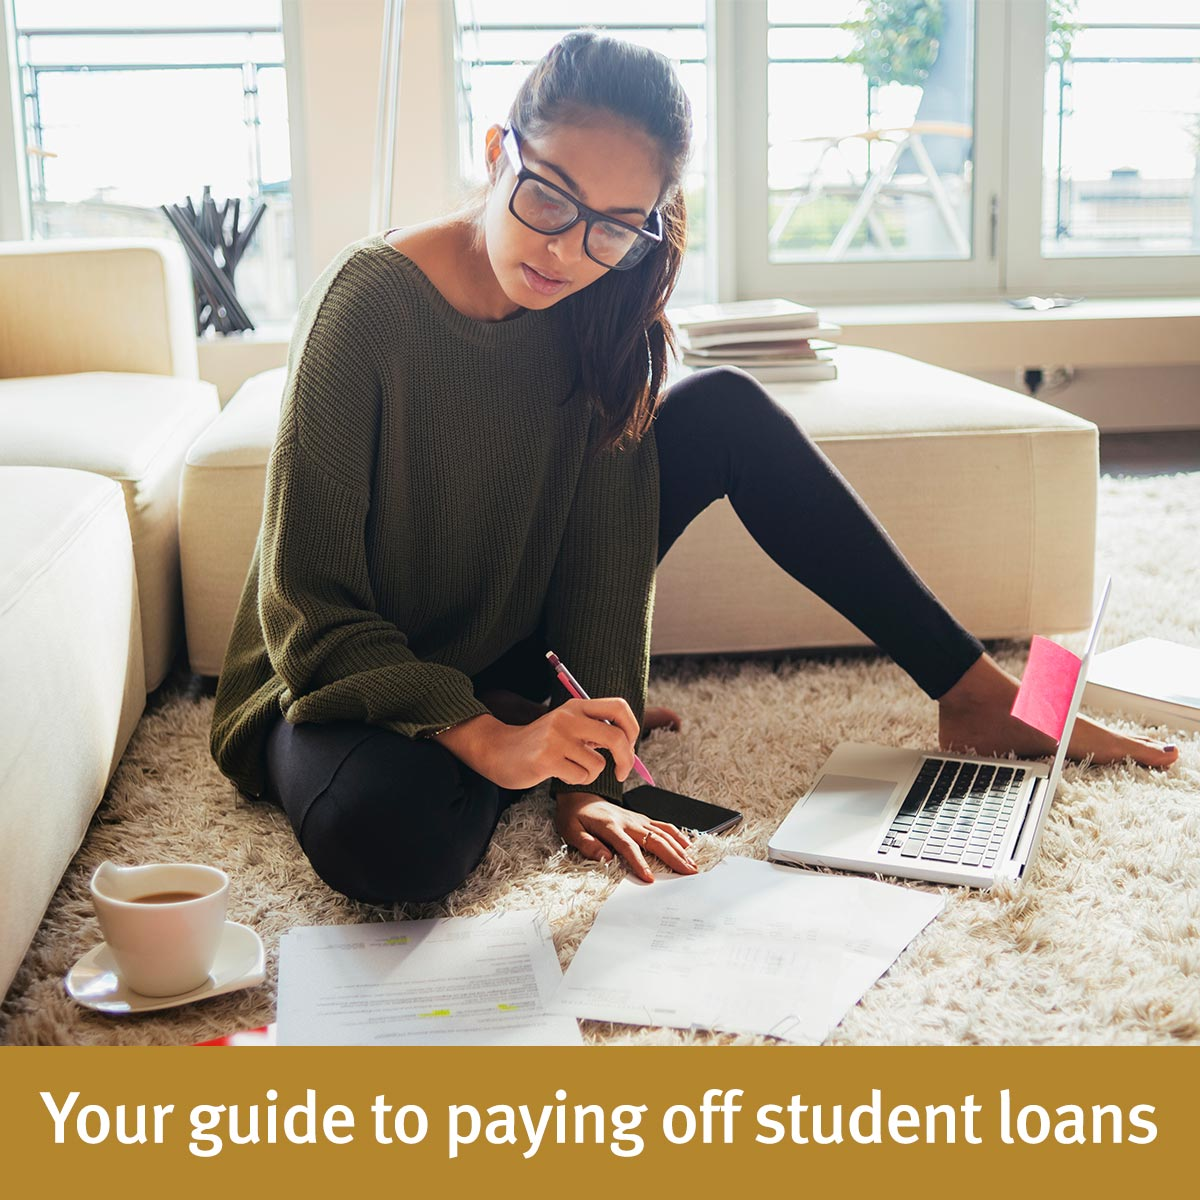 Your Study Guide to Paying Off Student Loans